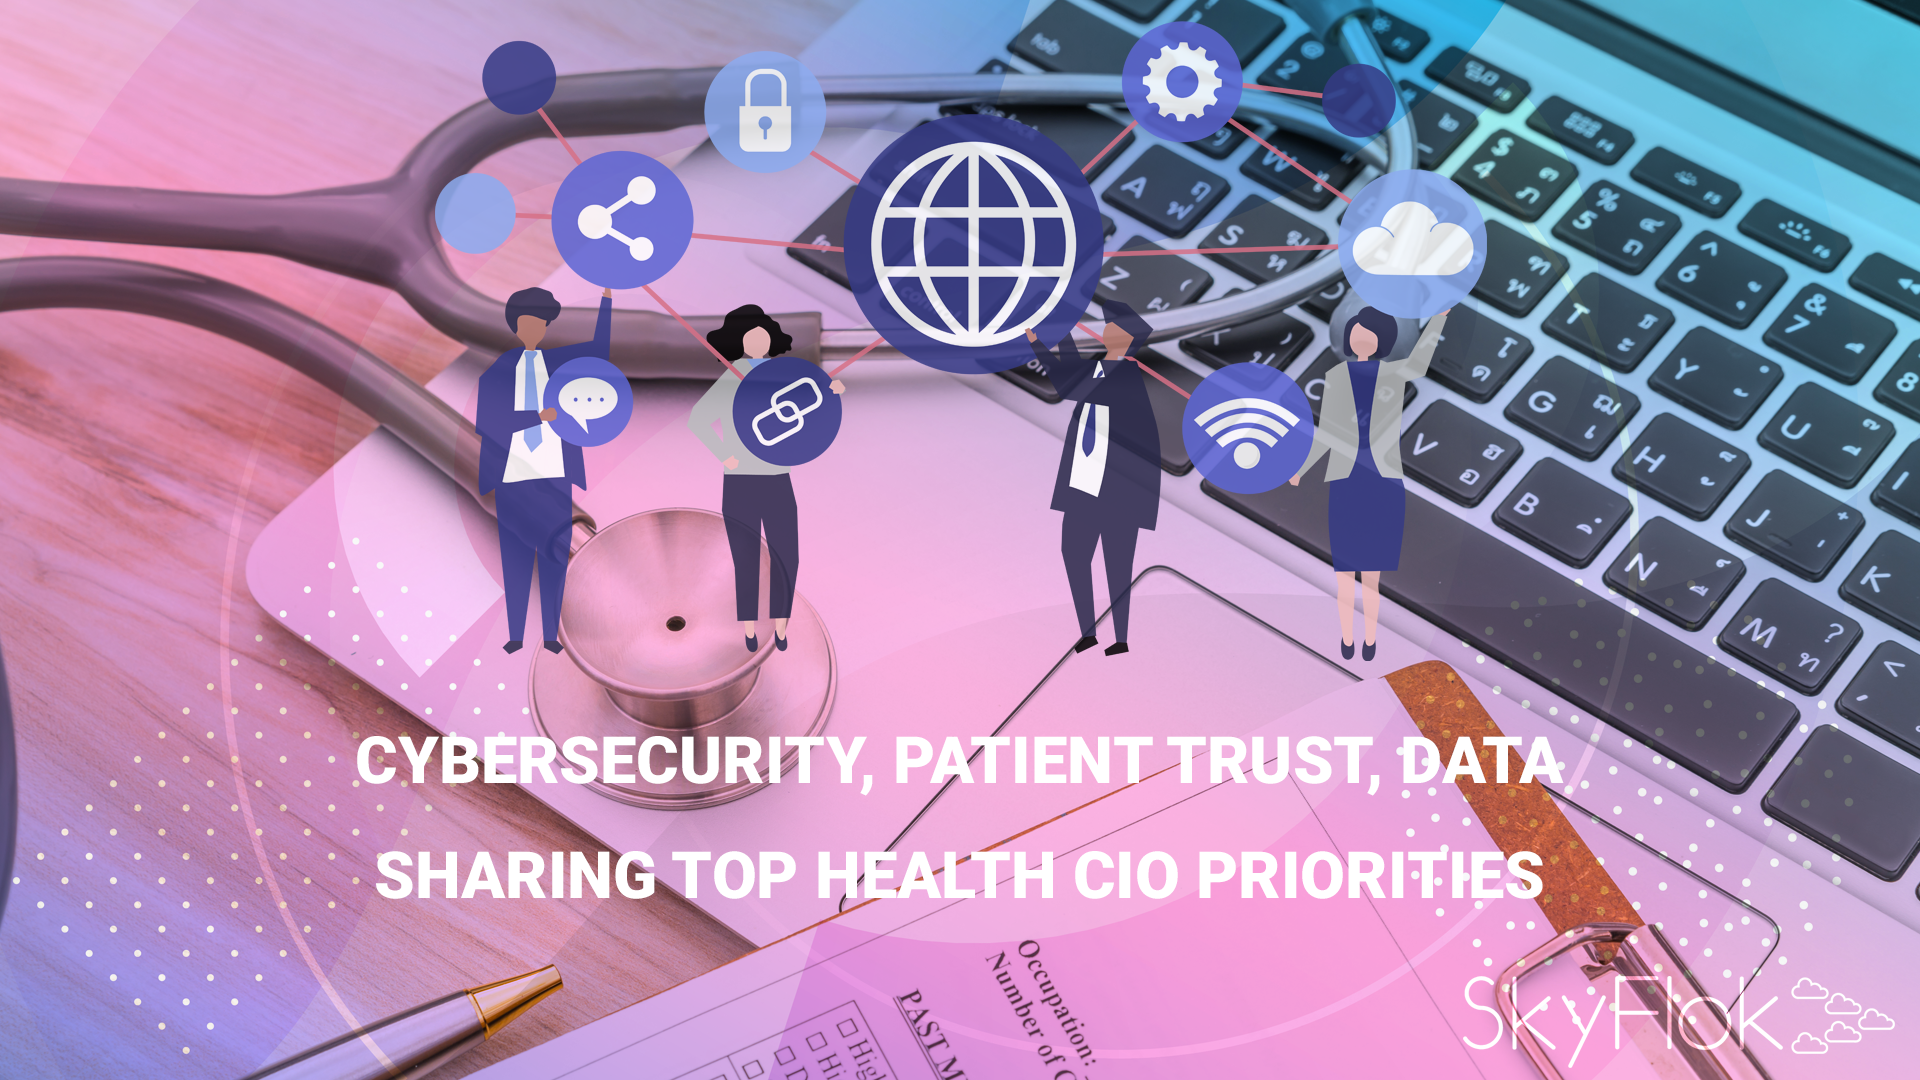 Cybersecurity, Patient Trust, Data Sharing Top Health CIO Priorities